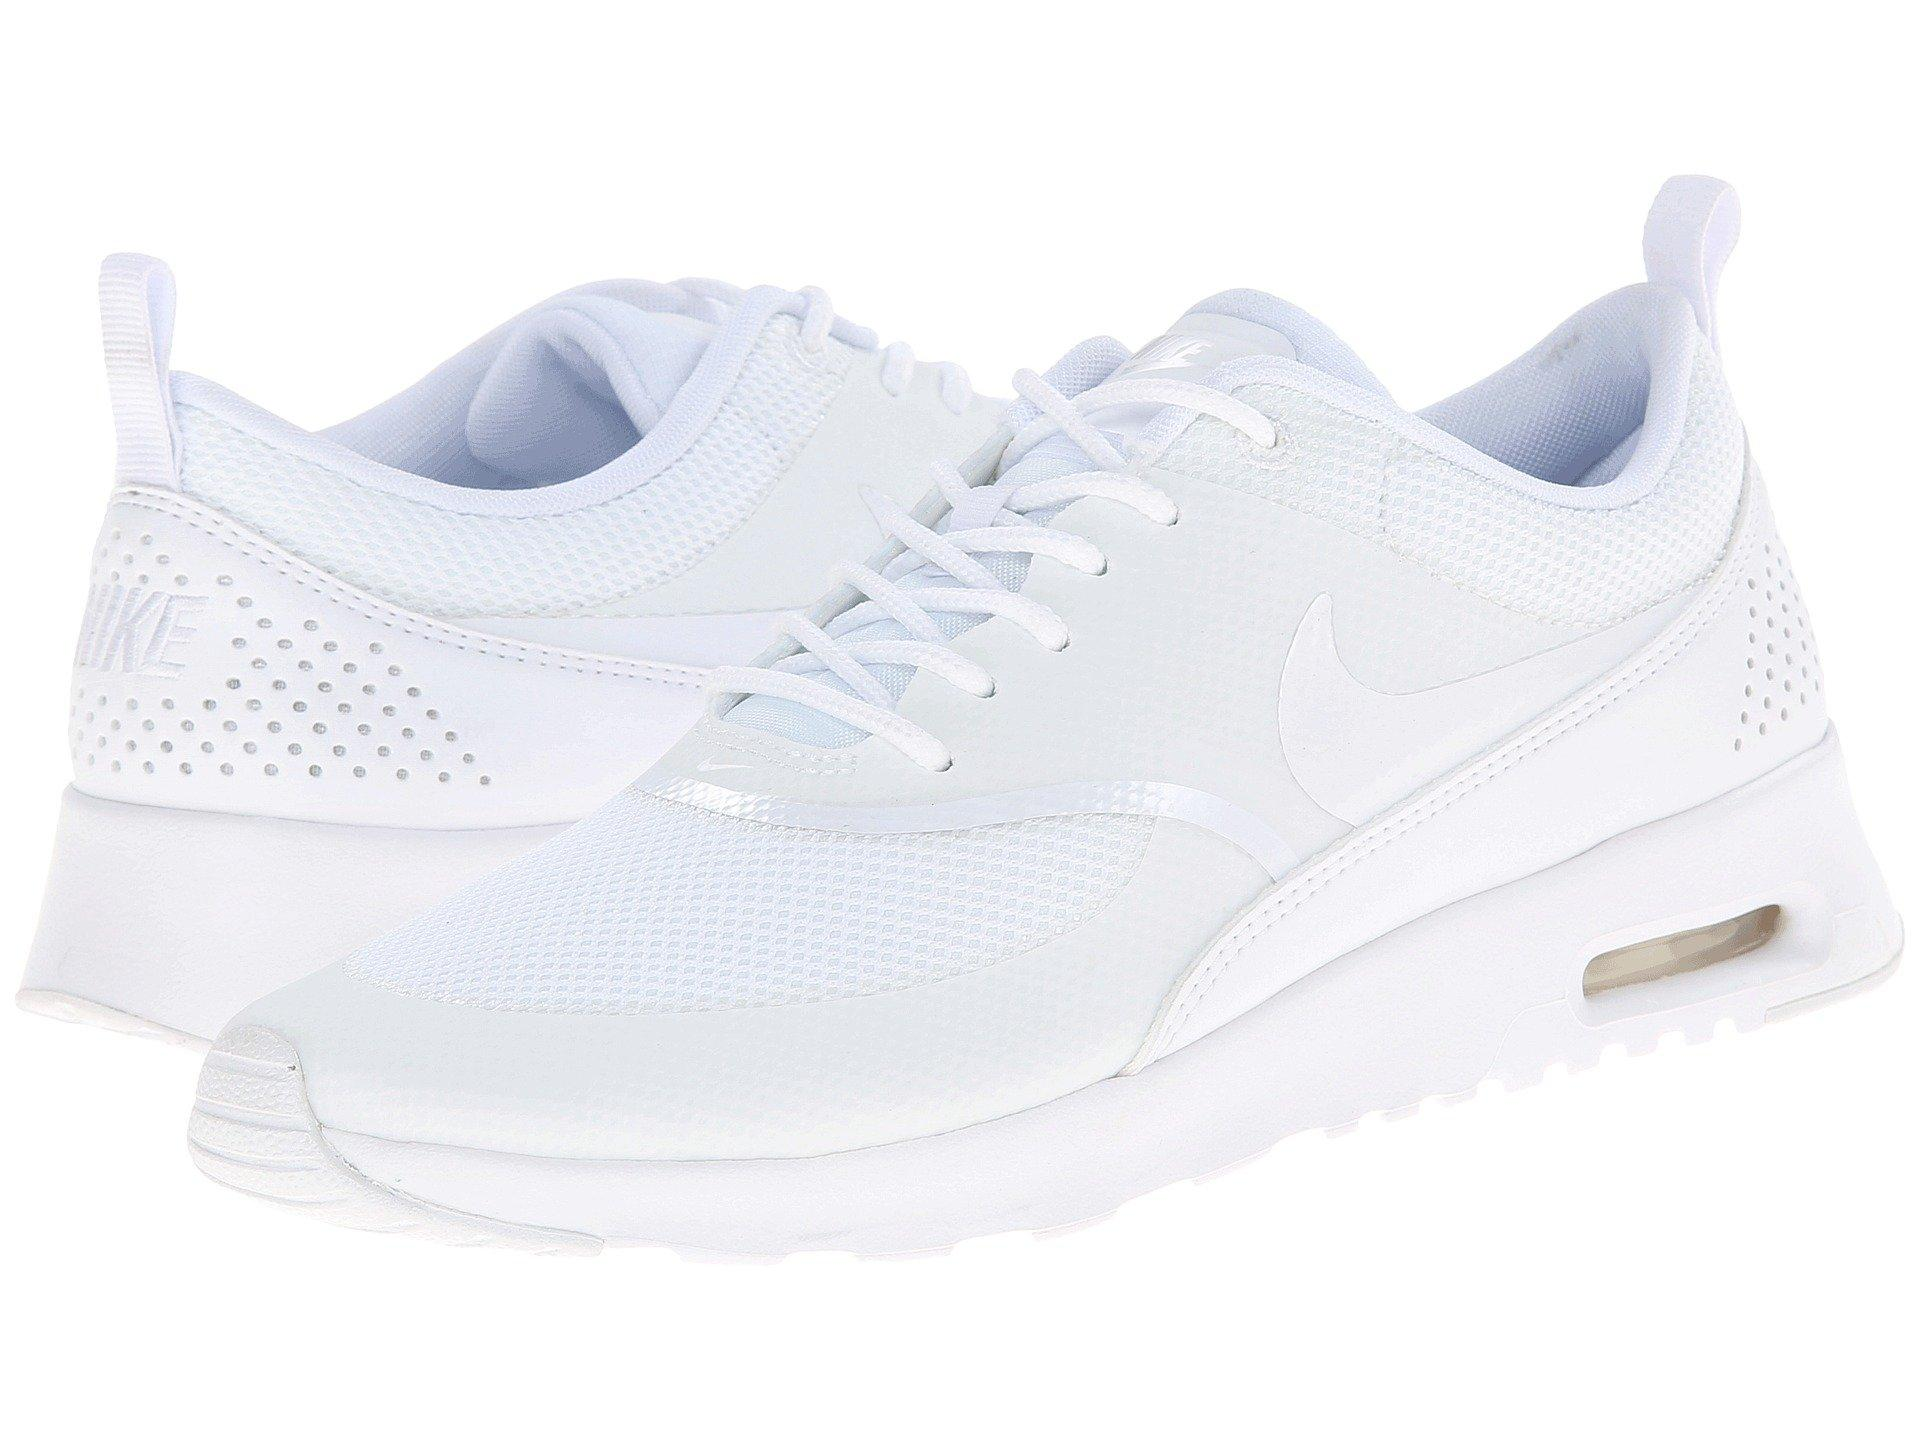 Nike Nike Air Max Thea (Barely RoseElemental RoseWhite) Women's Shoes from 6pm | ShapeShop